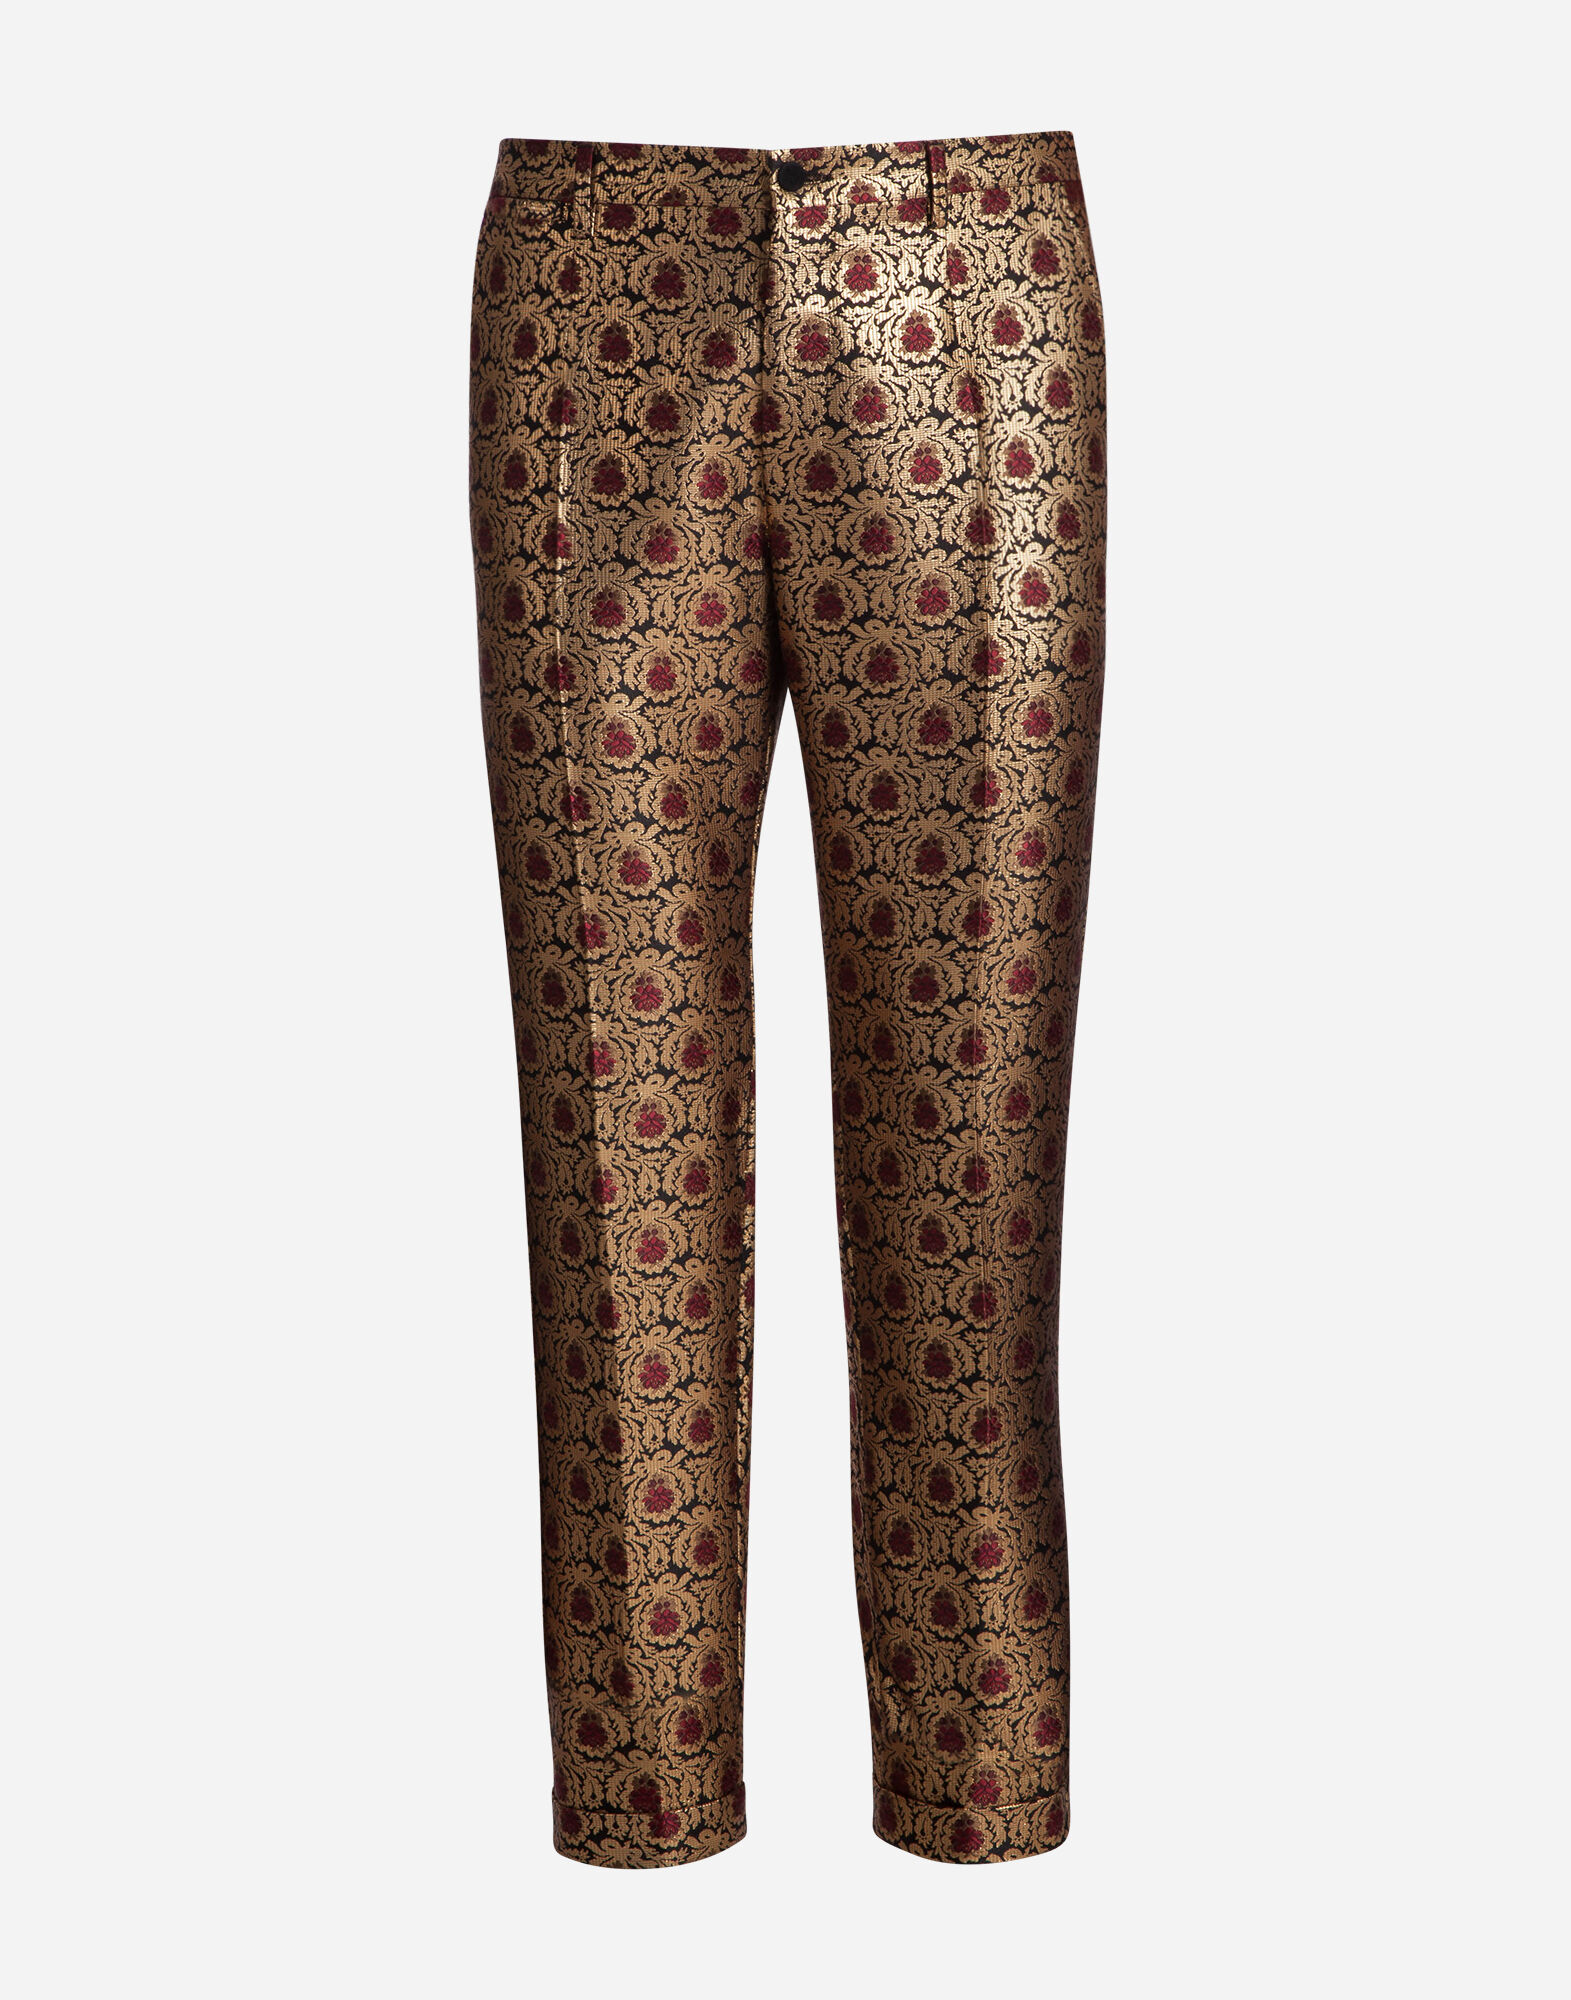 PANTS IN JACQUARD